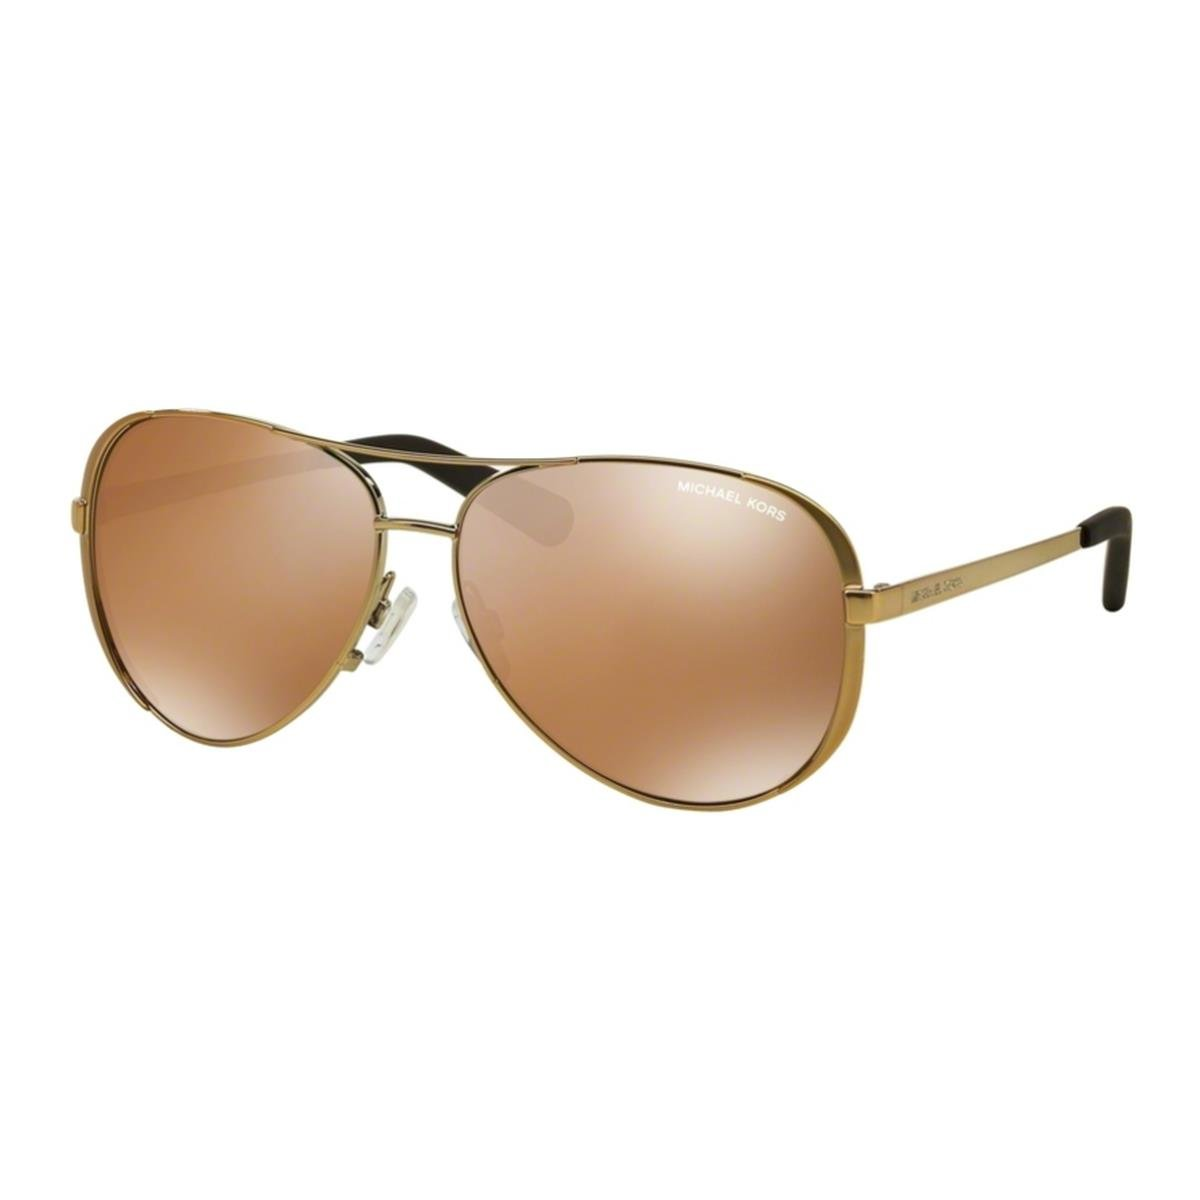 Michael Kors MK5004 Chelsea Sunglasses, Gold